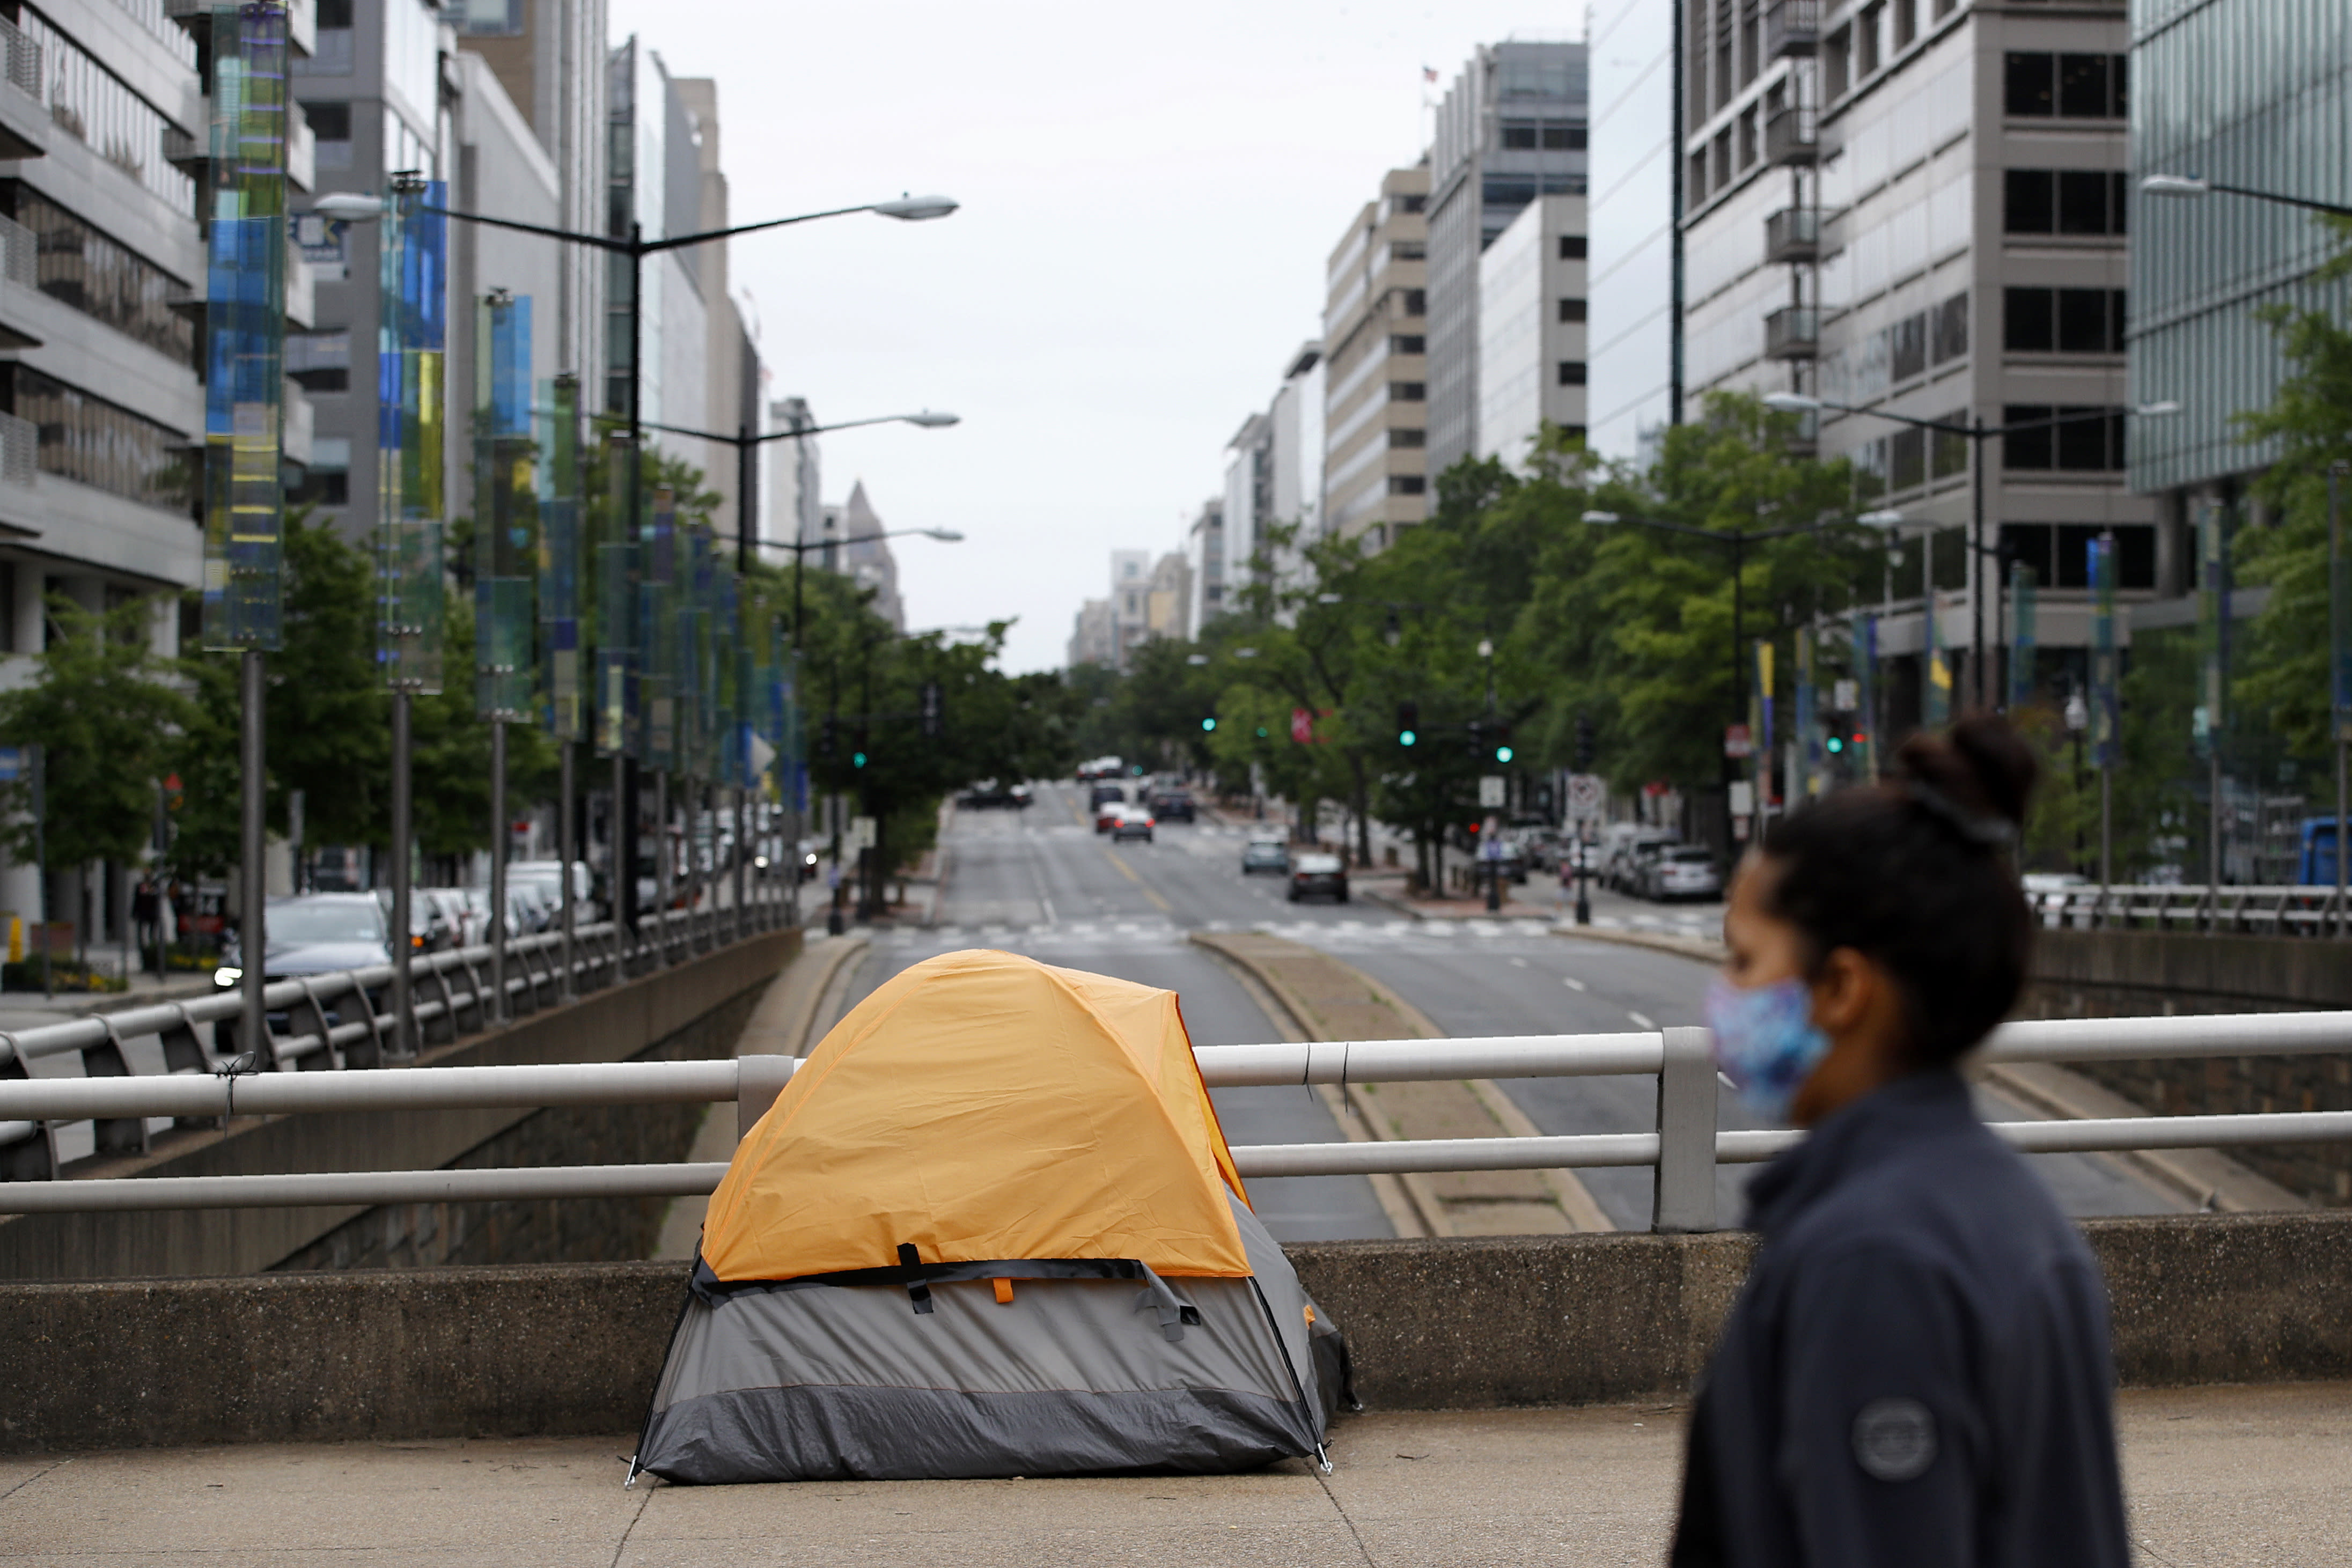 A homeless person's tent sits above a quiet K Street Northwest as a woman wearing a face mask to protect against the spread of the new coronavirus walks past, Thursday, May 21, 2020, in Washington. The District of Columbia is under a stay-home order for all residents in an effort to slow the spread of the new coronavirus. (AP Photo/Patrick Semansky)